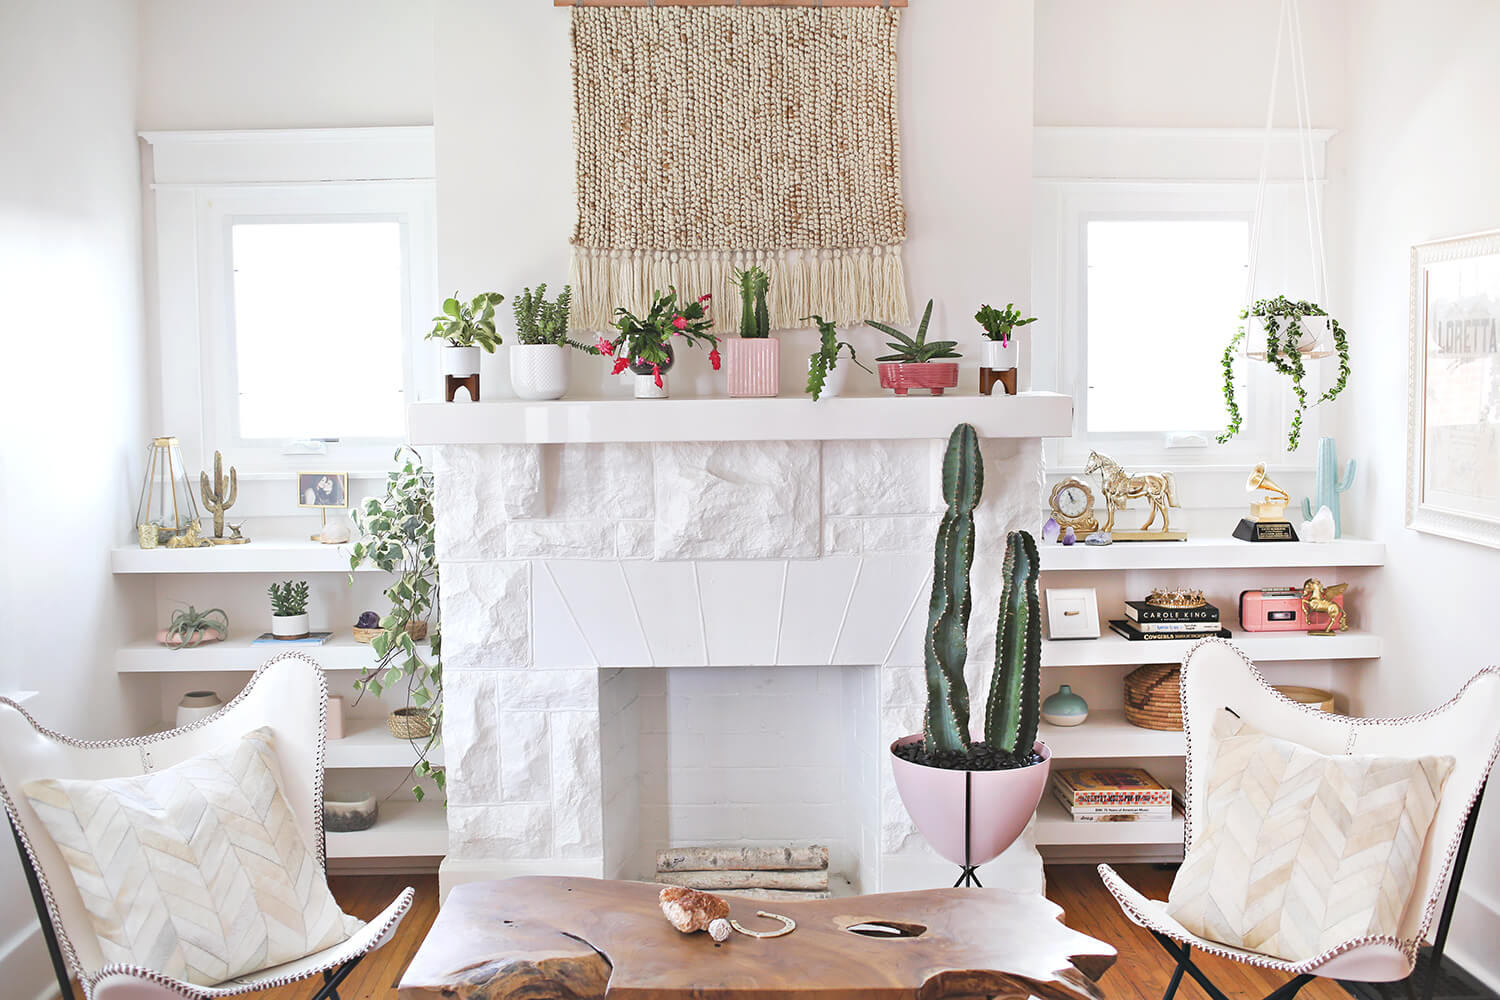 Kacey Musgraves Living Room Tour